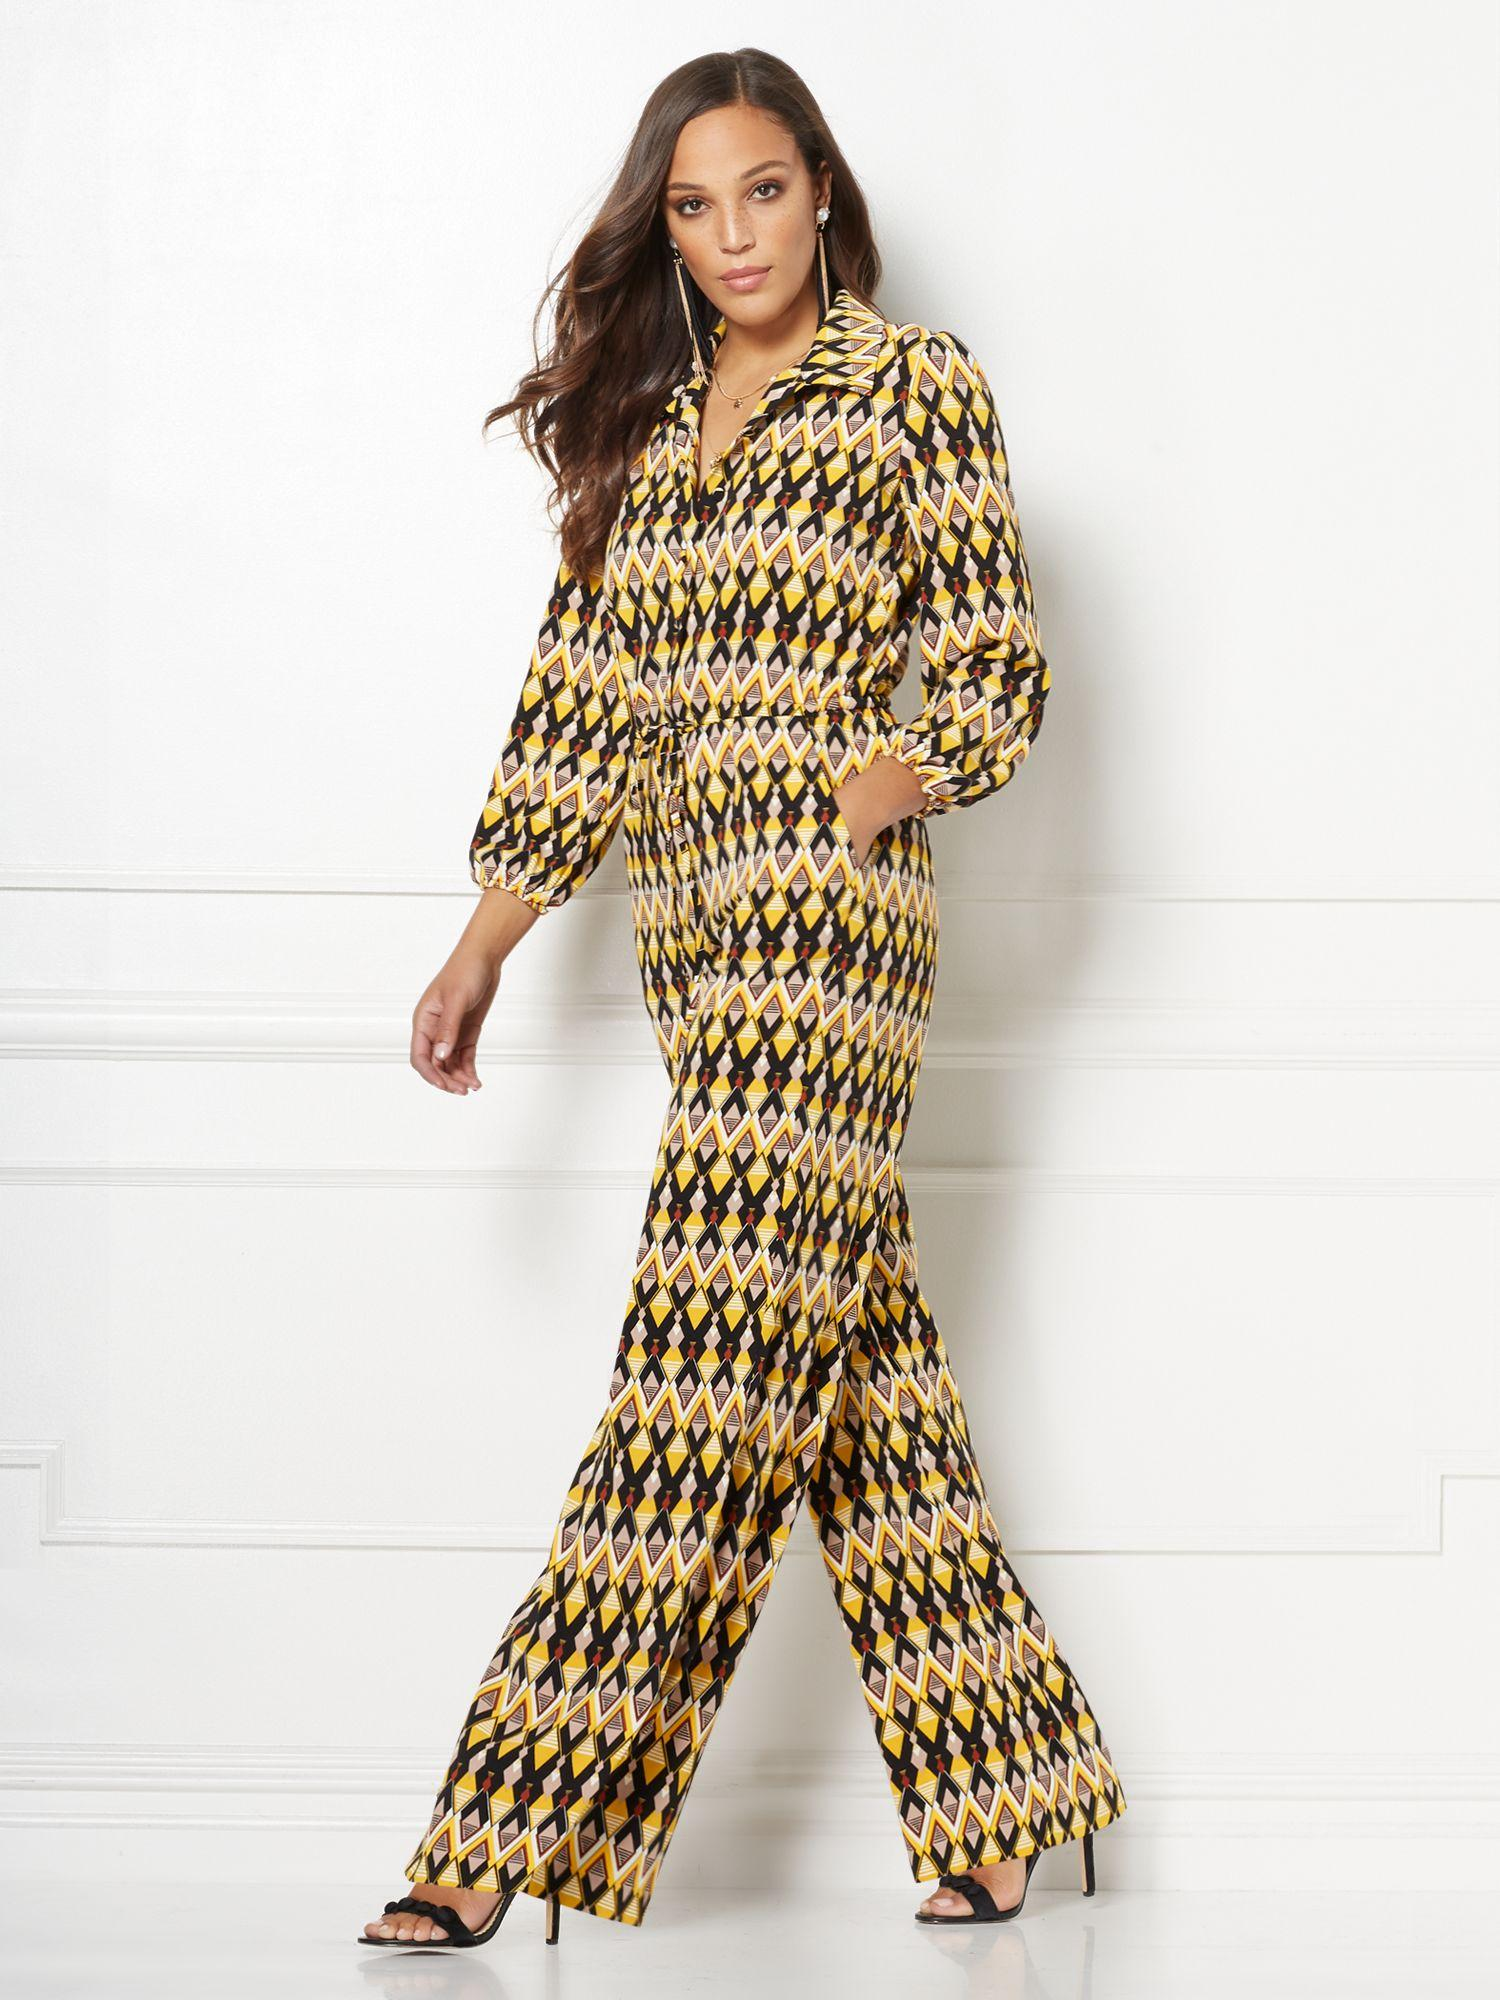 f2bc7a57 New York & Company Natasha Jumpsuit - Eva Mendes Collection in ...